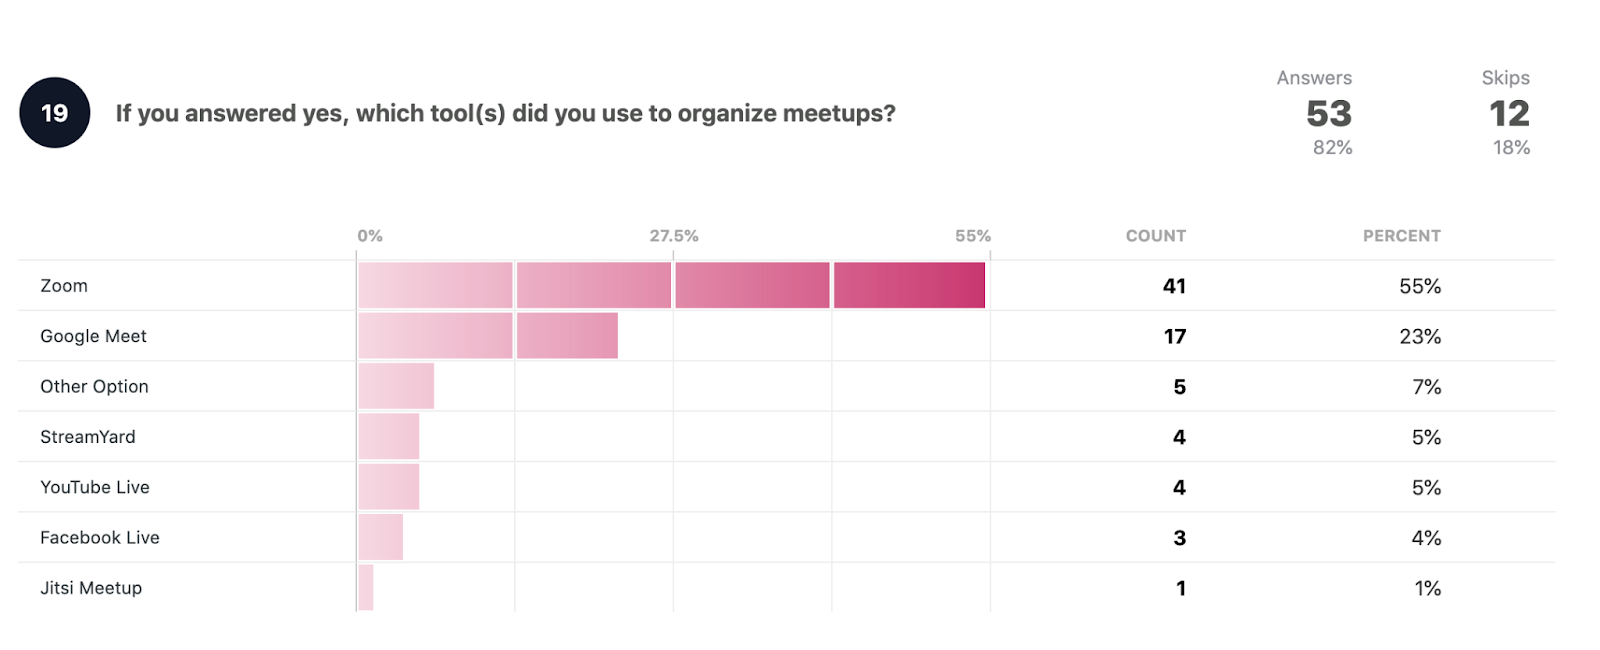 If you answered yes, which tool(s) did you use to organize meetups?  Zoom: 41 55% Google Meet: 17 23% Other option: 5 7% StreamYard: 4 5% YouTube Live: 4 5% Facebook Live: 3 4% Jitsi Meetup: 1 1%